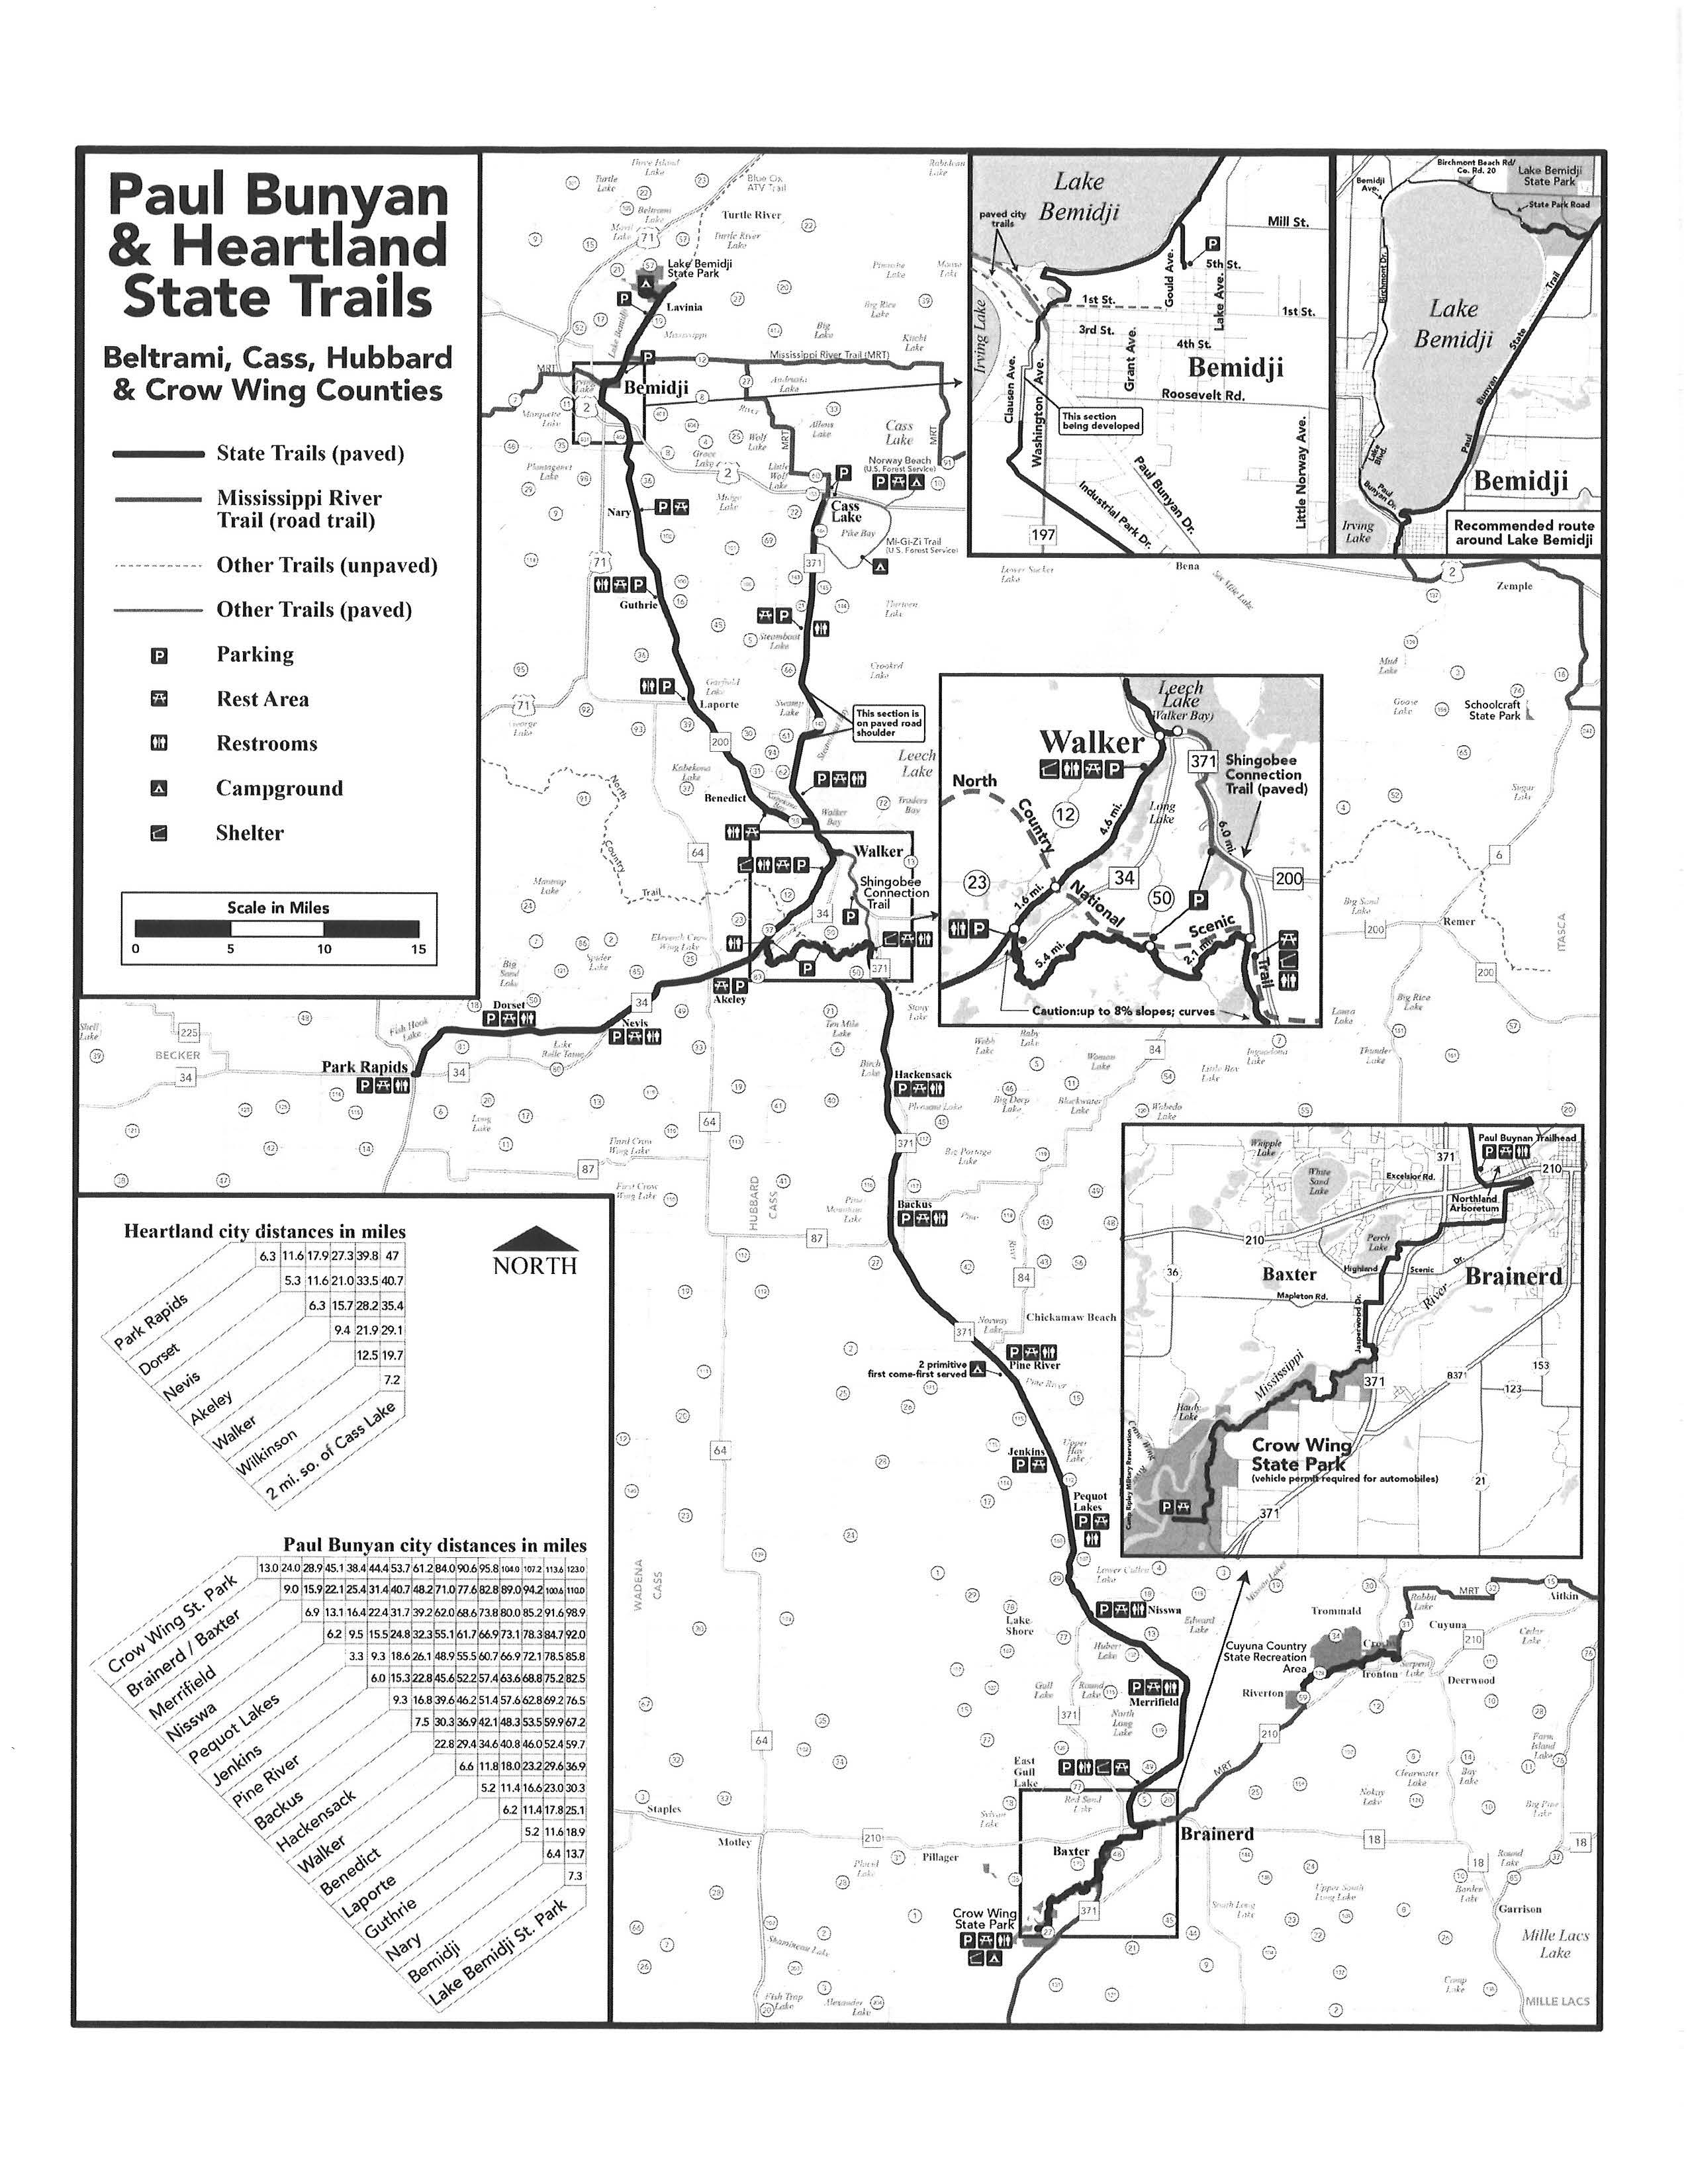 Paul Bunyan Trail - City of Pequot Lakes on central minnesota bike trails, map of camp croft, map of preston minnesota, seabrook island sc bike trails, map of 3m maplewood, map of hilton head sea pines resort, houston bike trails, map of minneapolis green bikes,